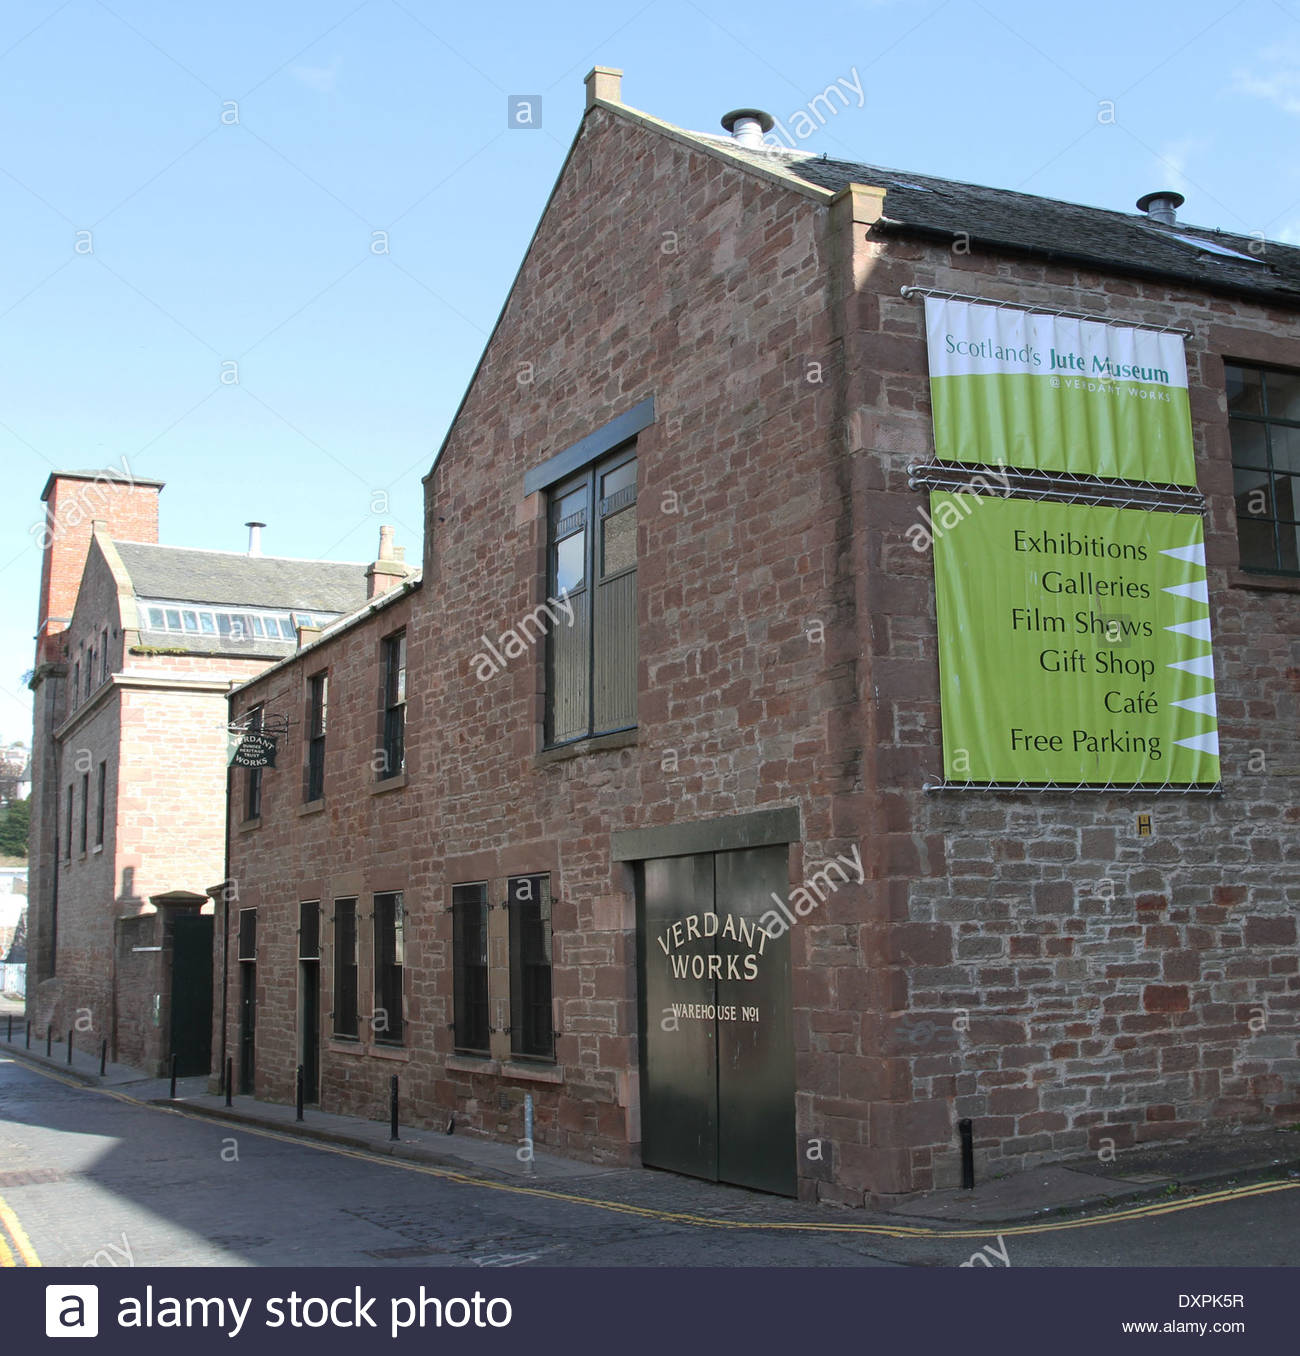 Verdant Works Dundee, exterior of Verdant Works Jute Mill Museum Dundee Scotland March ...